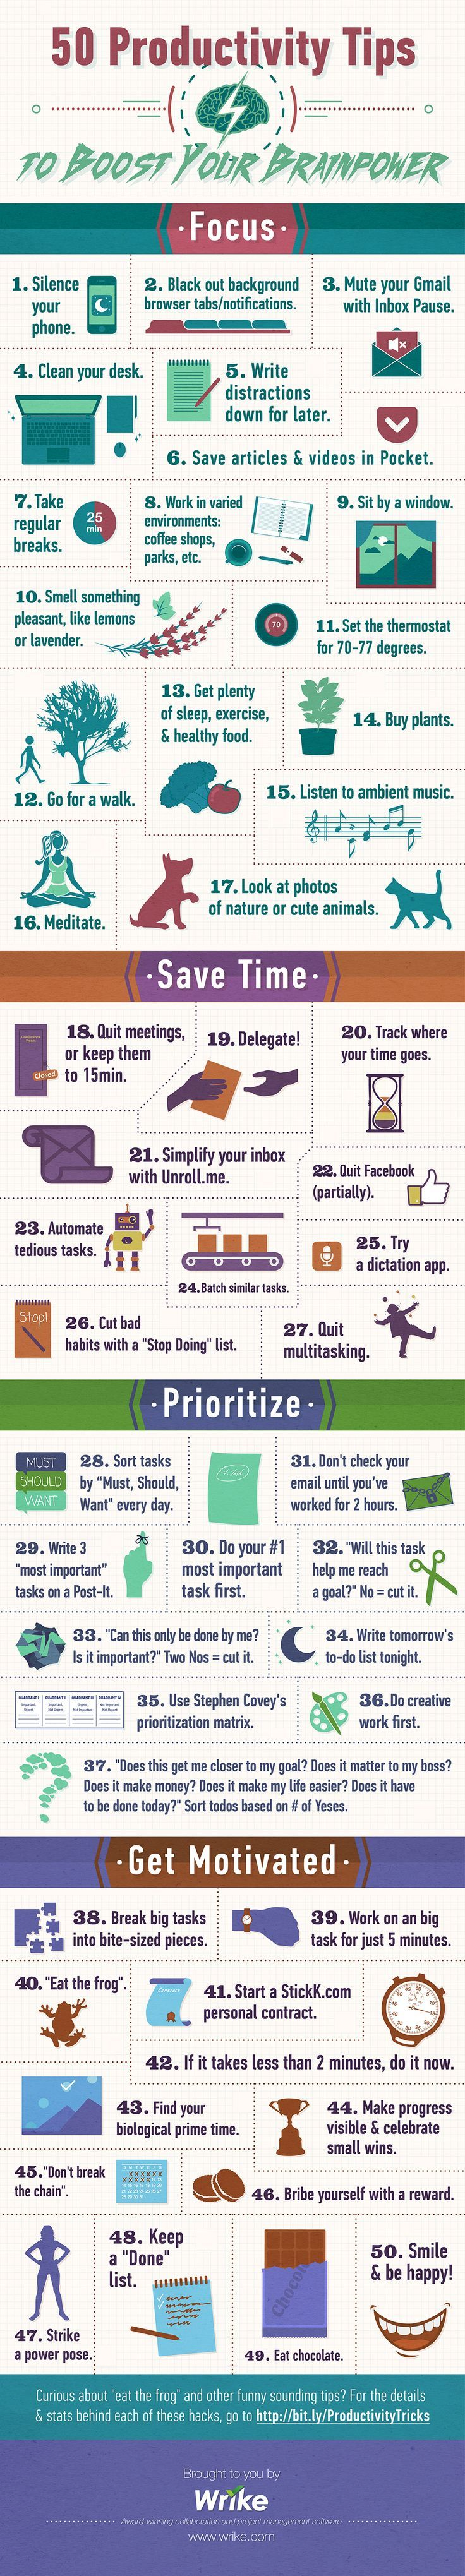 50 Productivity Tips - getting things done JAMSO supports business through goal setting, KPI management and business intelligence solutions. www.jamsovaluesma...